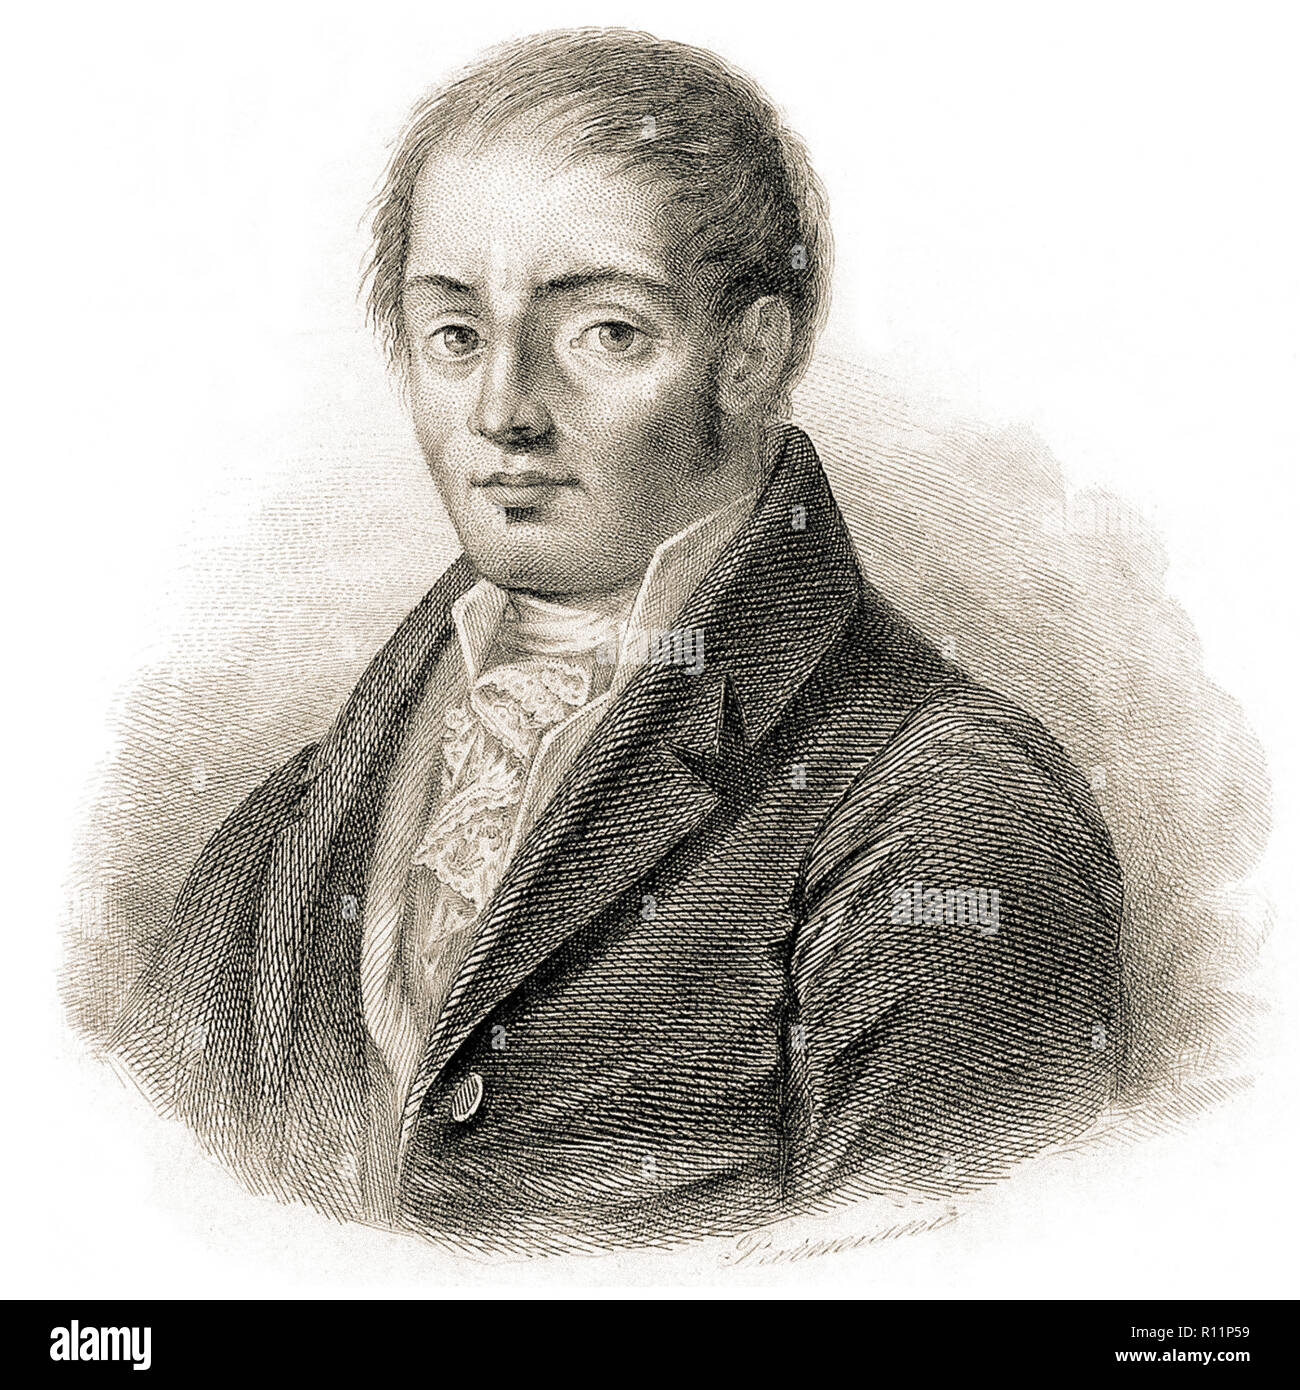 Francesco Mario Pagano, (Brienza, 8 December 1748 - Naples, 29 October 1799) was an Italian jurist, philosopher, politician and playwright. He was one of the greatest exponents of Italian Enlightenment and a precursor of positivism, - Stock Image